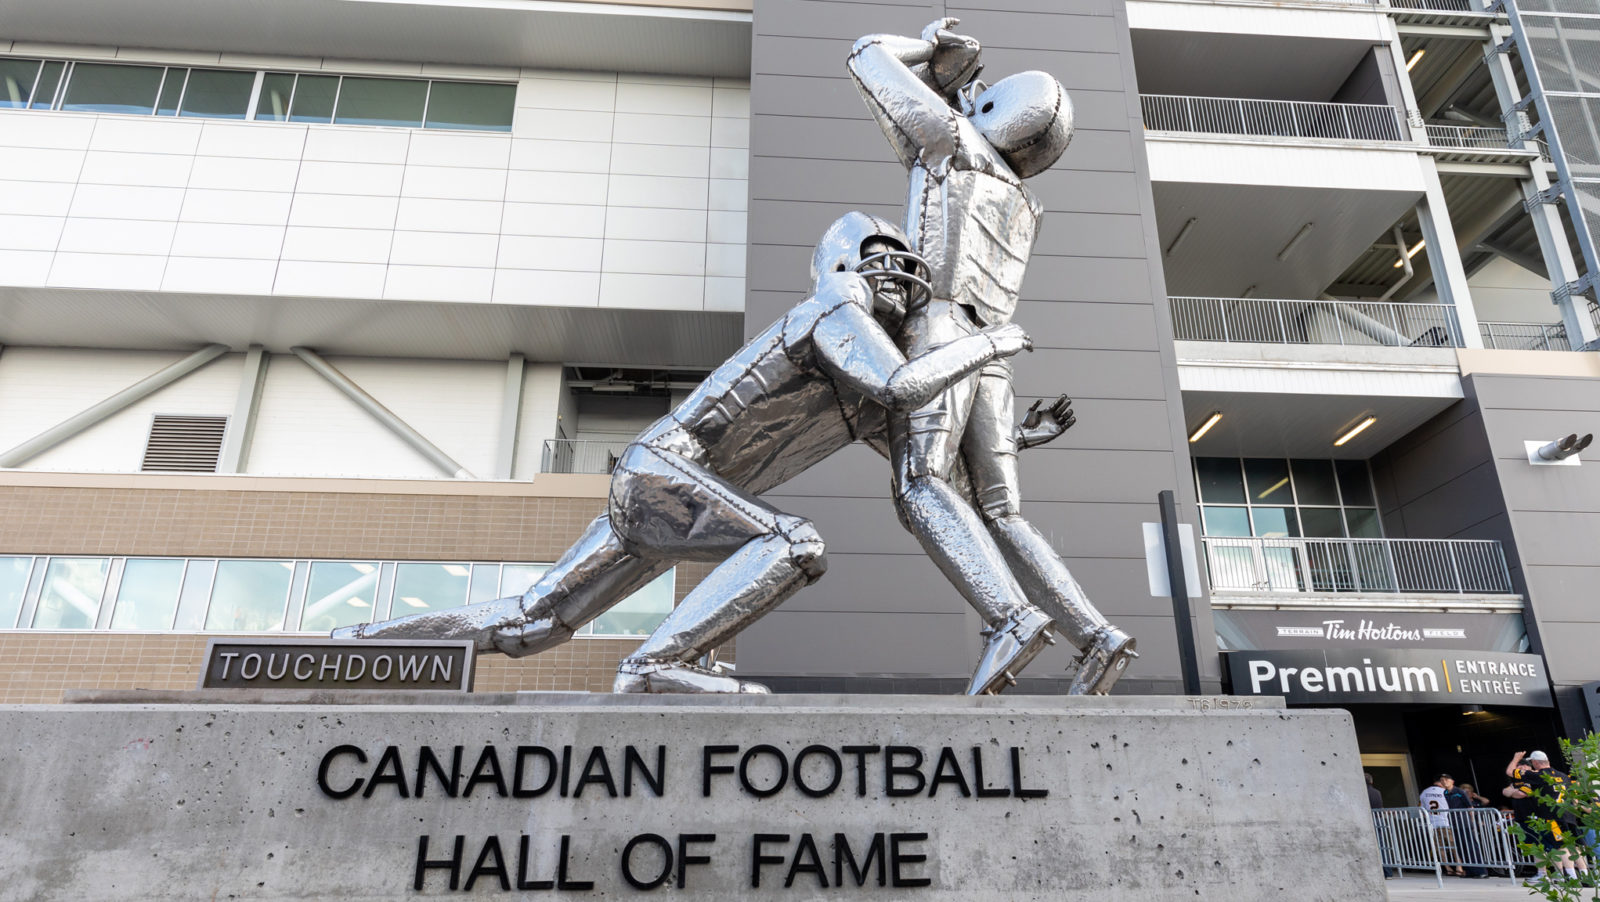 The 2019 Canadian Football Hall Of Fame class is here.